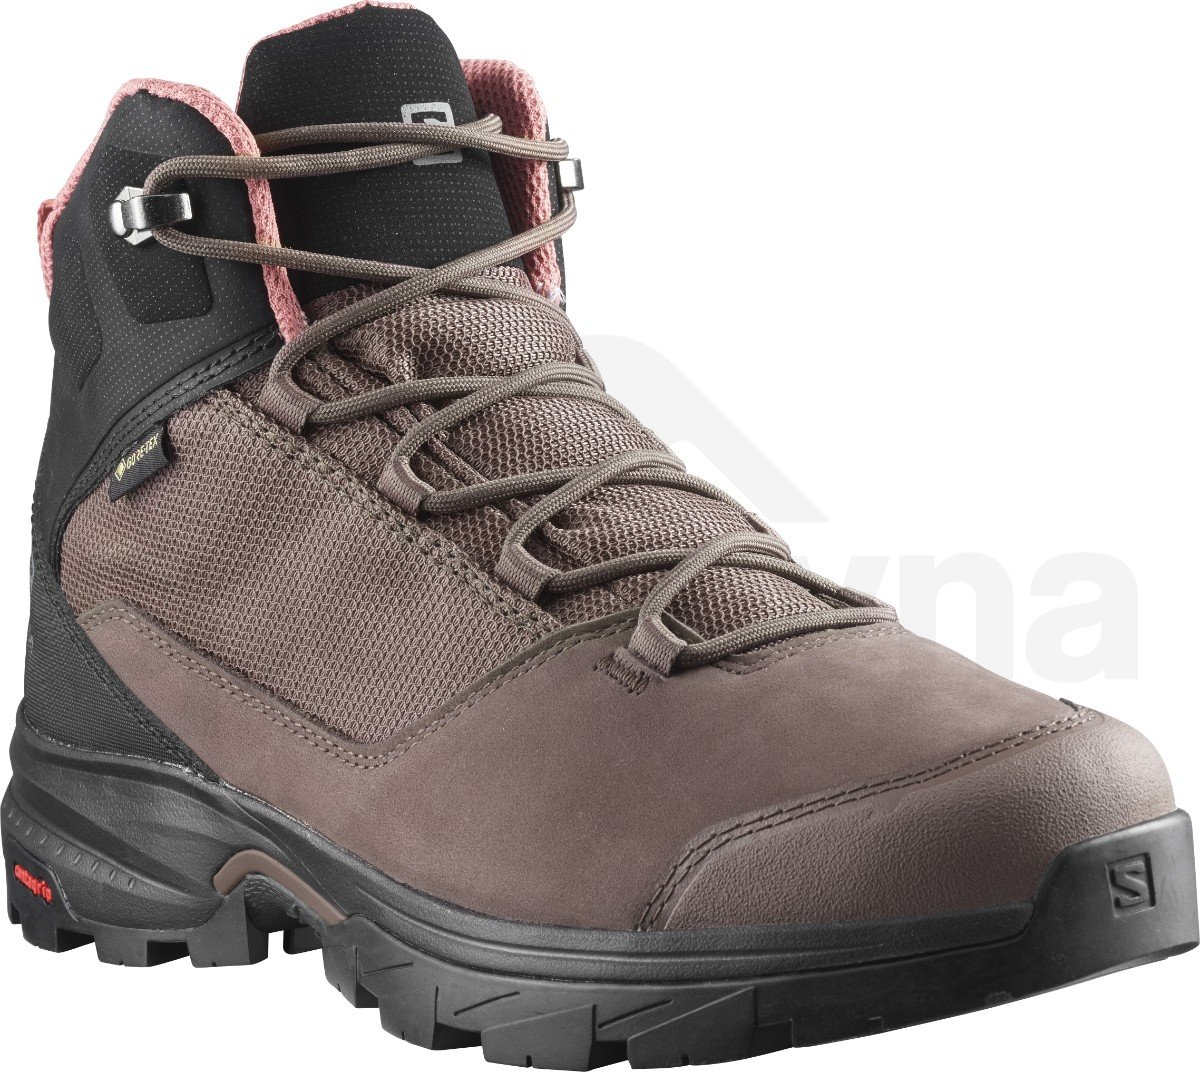 L41288300_5_GHO_OUTward GTX W Peppercorn-Black.jpg.cq5dam.web.1200.1200